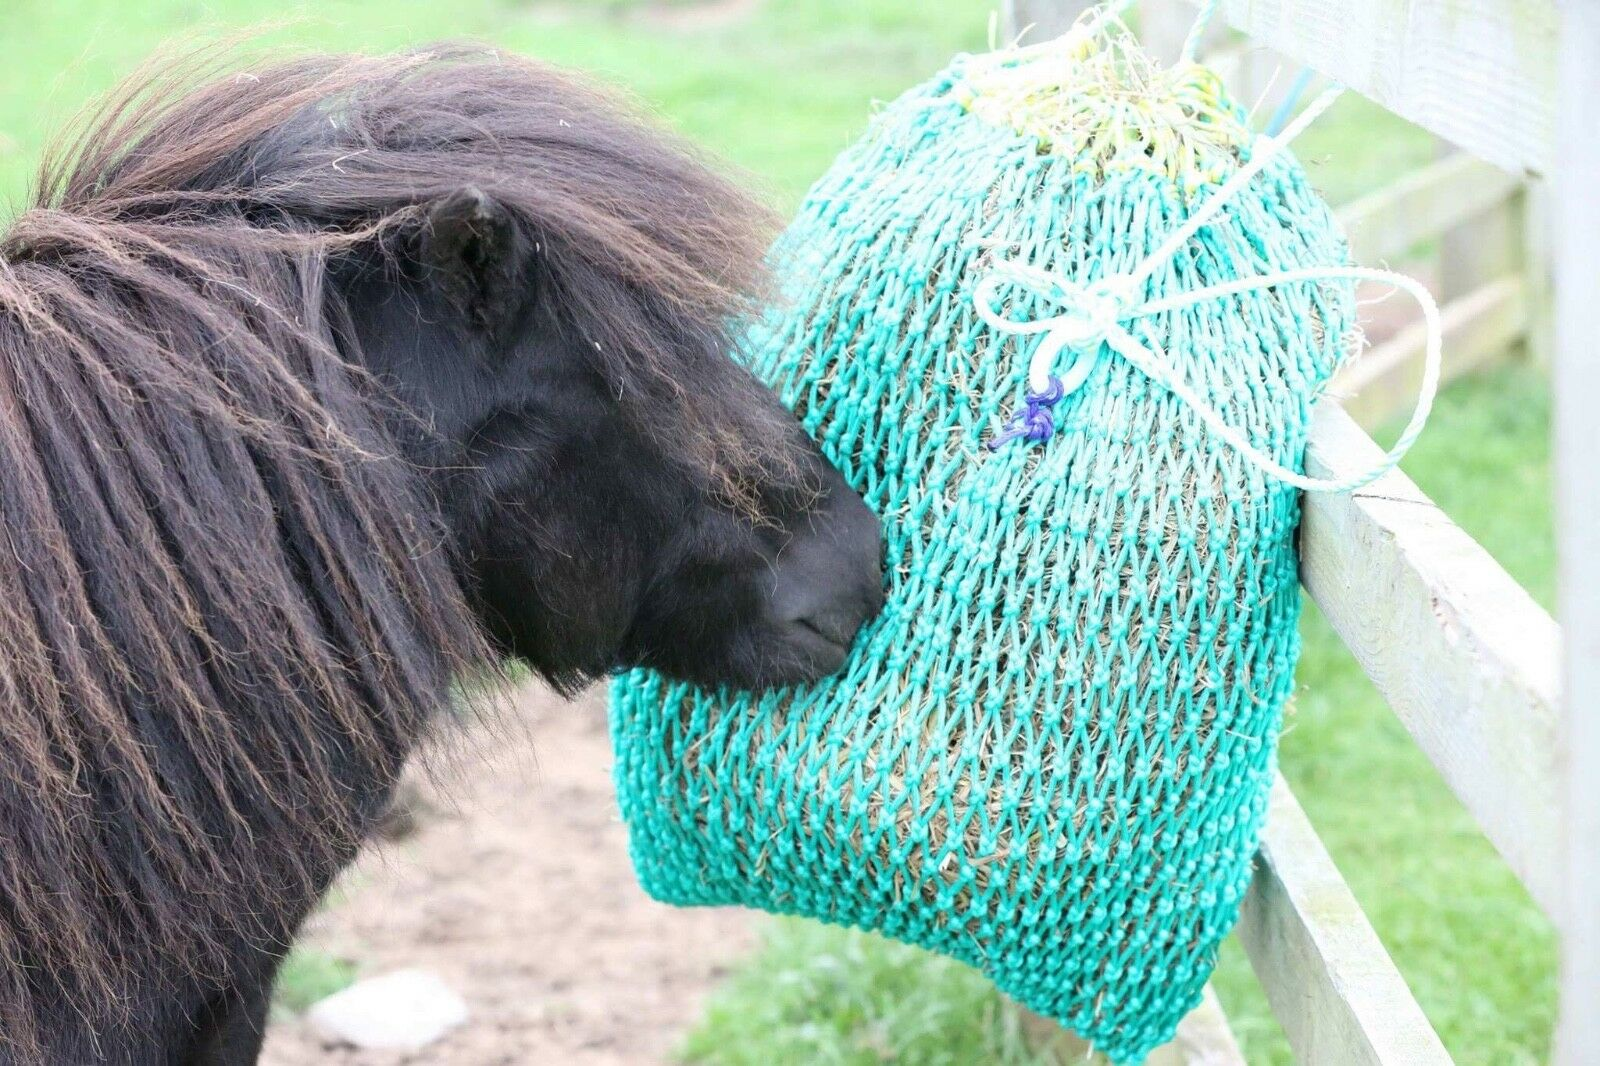 MARTSNETS - SUPERIOUR SLOW FEEDERS - FEED THE MORE NATURAL WAY